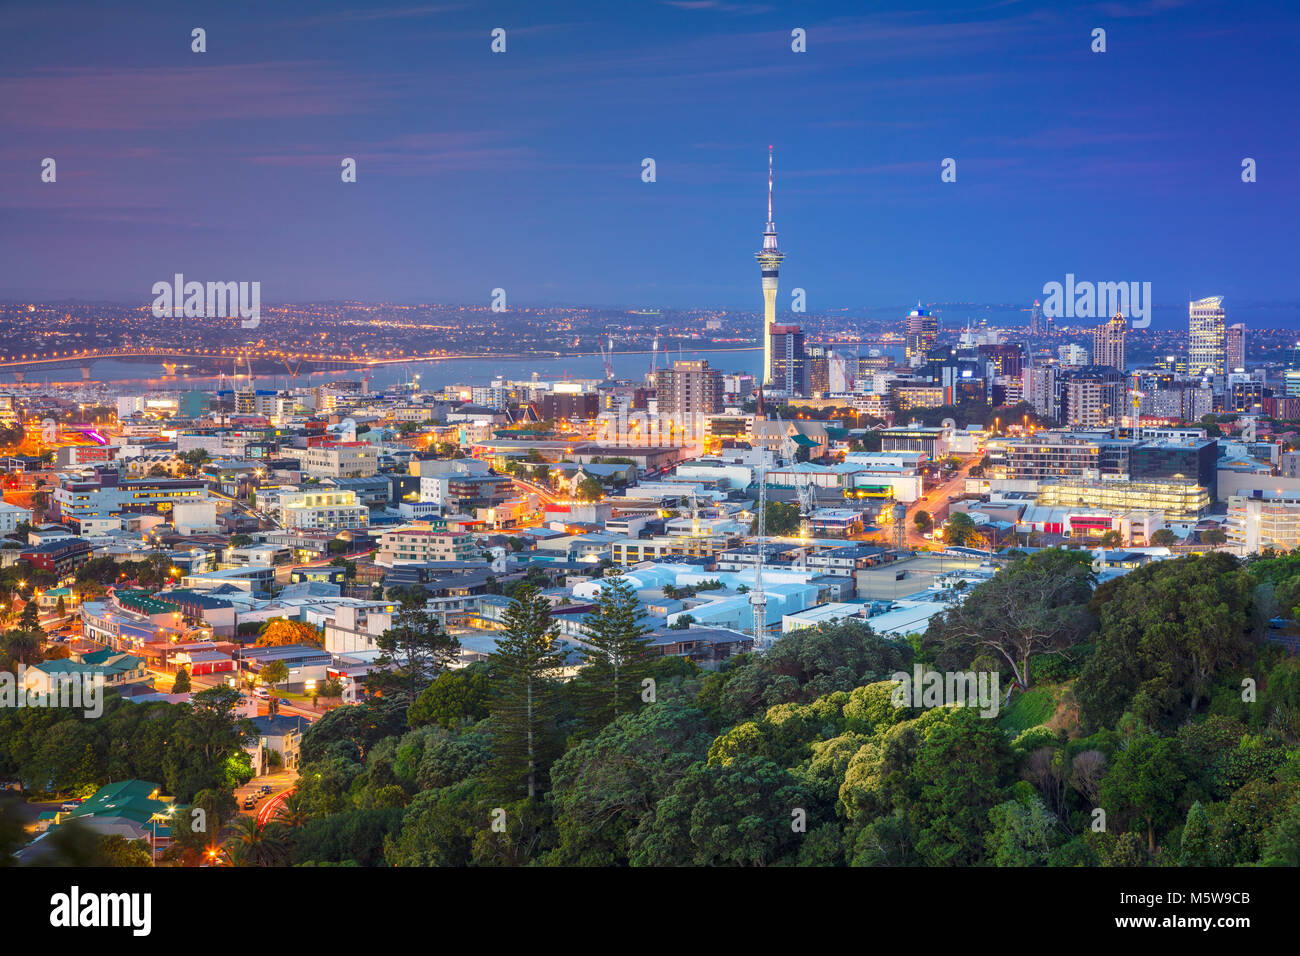 Auckland. Cityscape image of Auckland skyline, New Zealand taken from Mt. Eden at dusk. - Stock Image